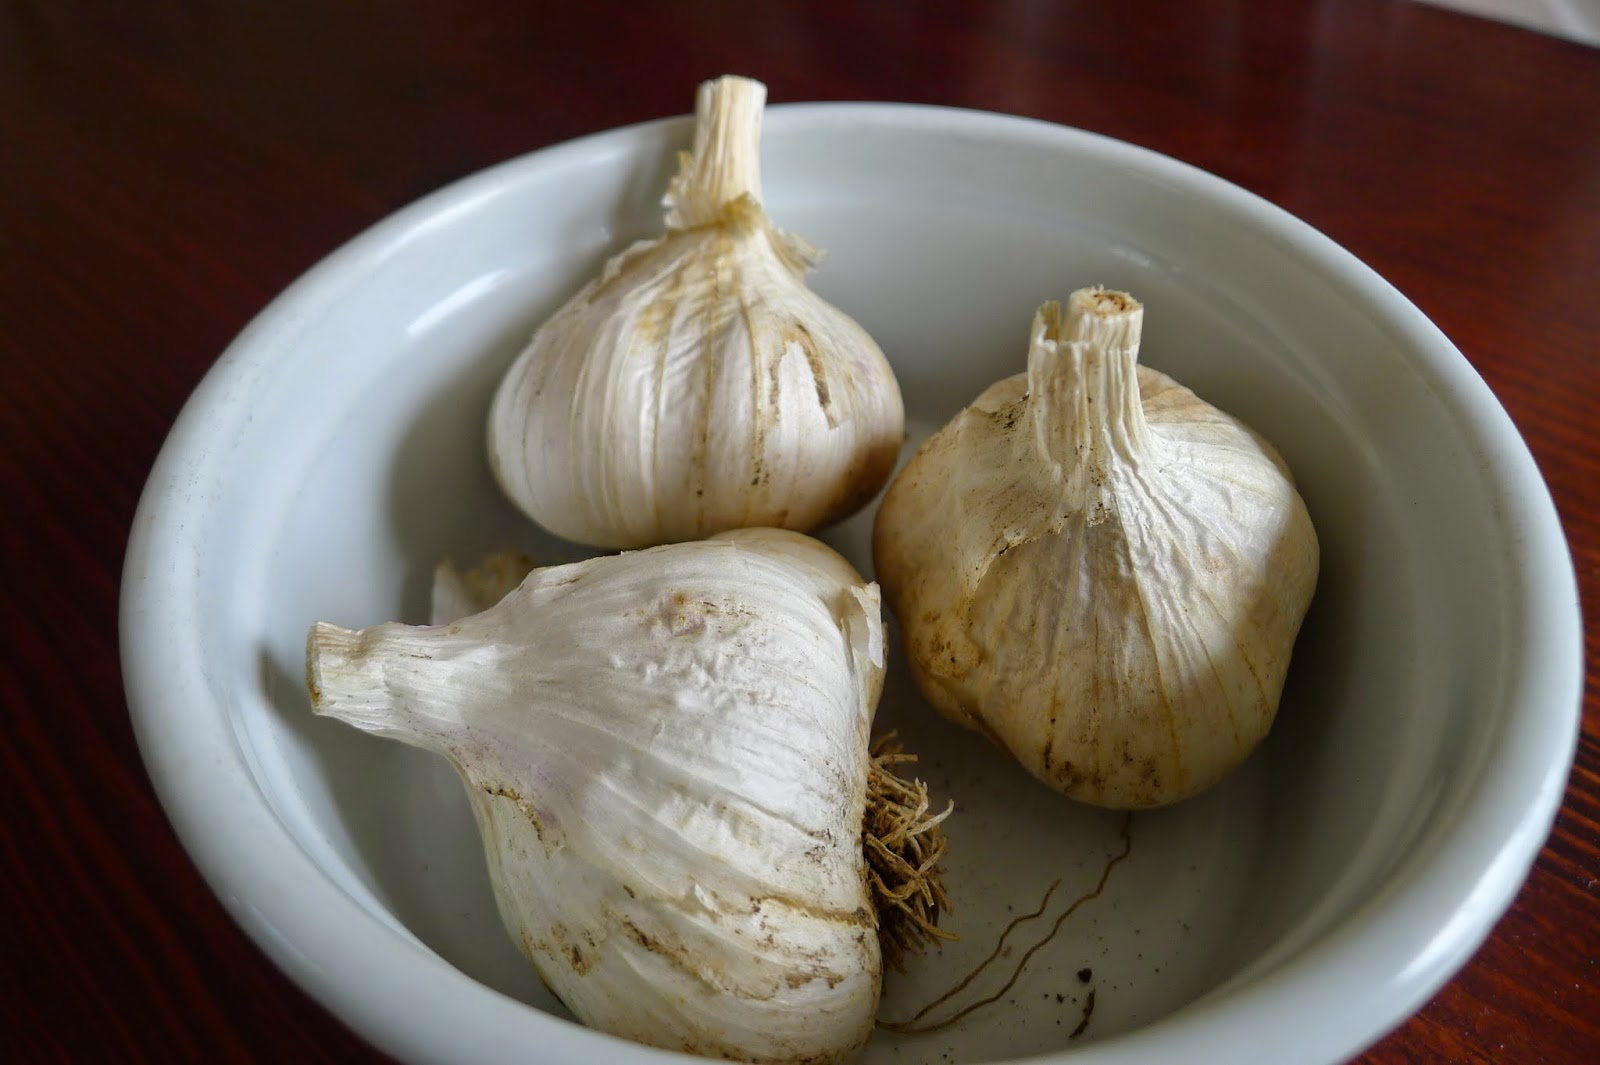 Saving garlic as seed garlic,  preserving, urban farming